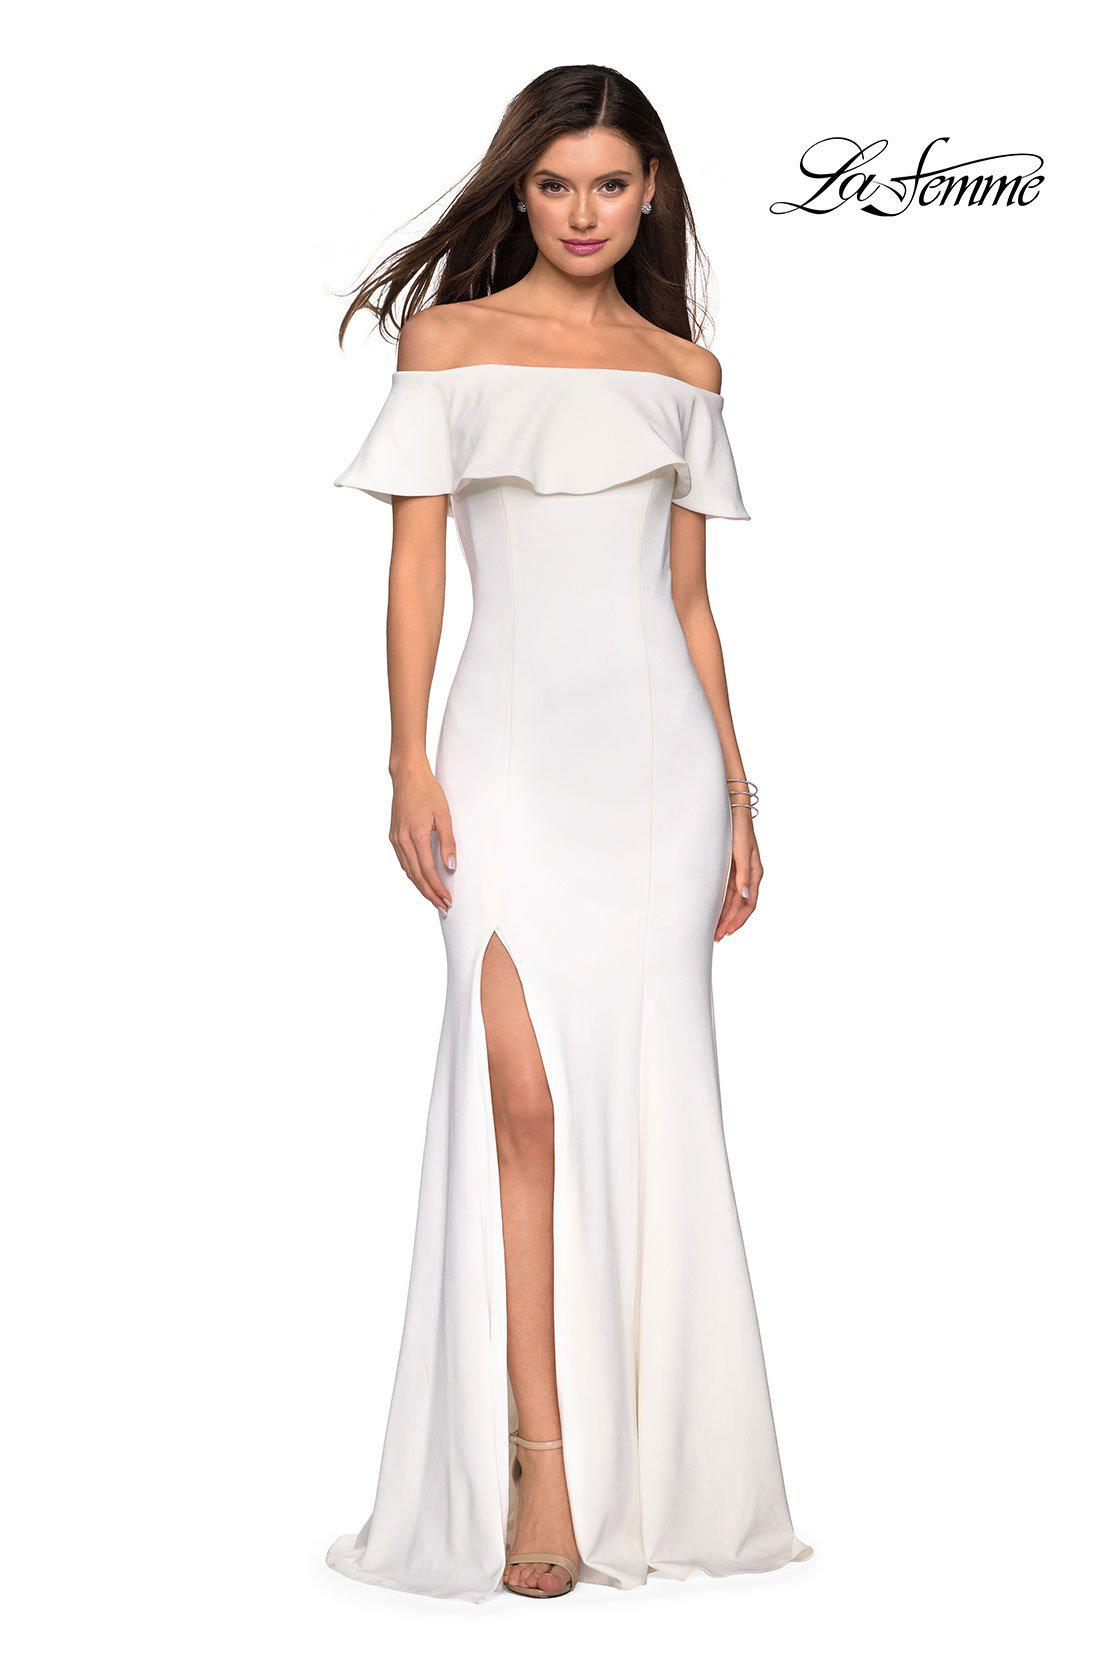 c8042d2e469 Lyst - La Femme 27096 Ruffled Off-shoulder Jersey Trumpet Dress in White